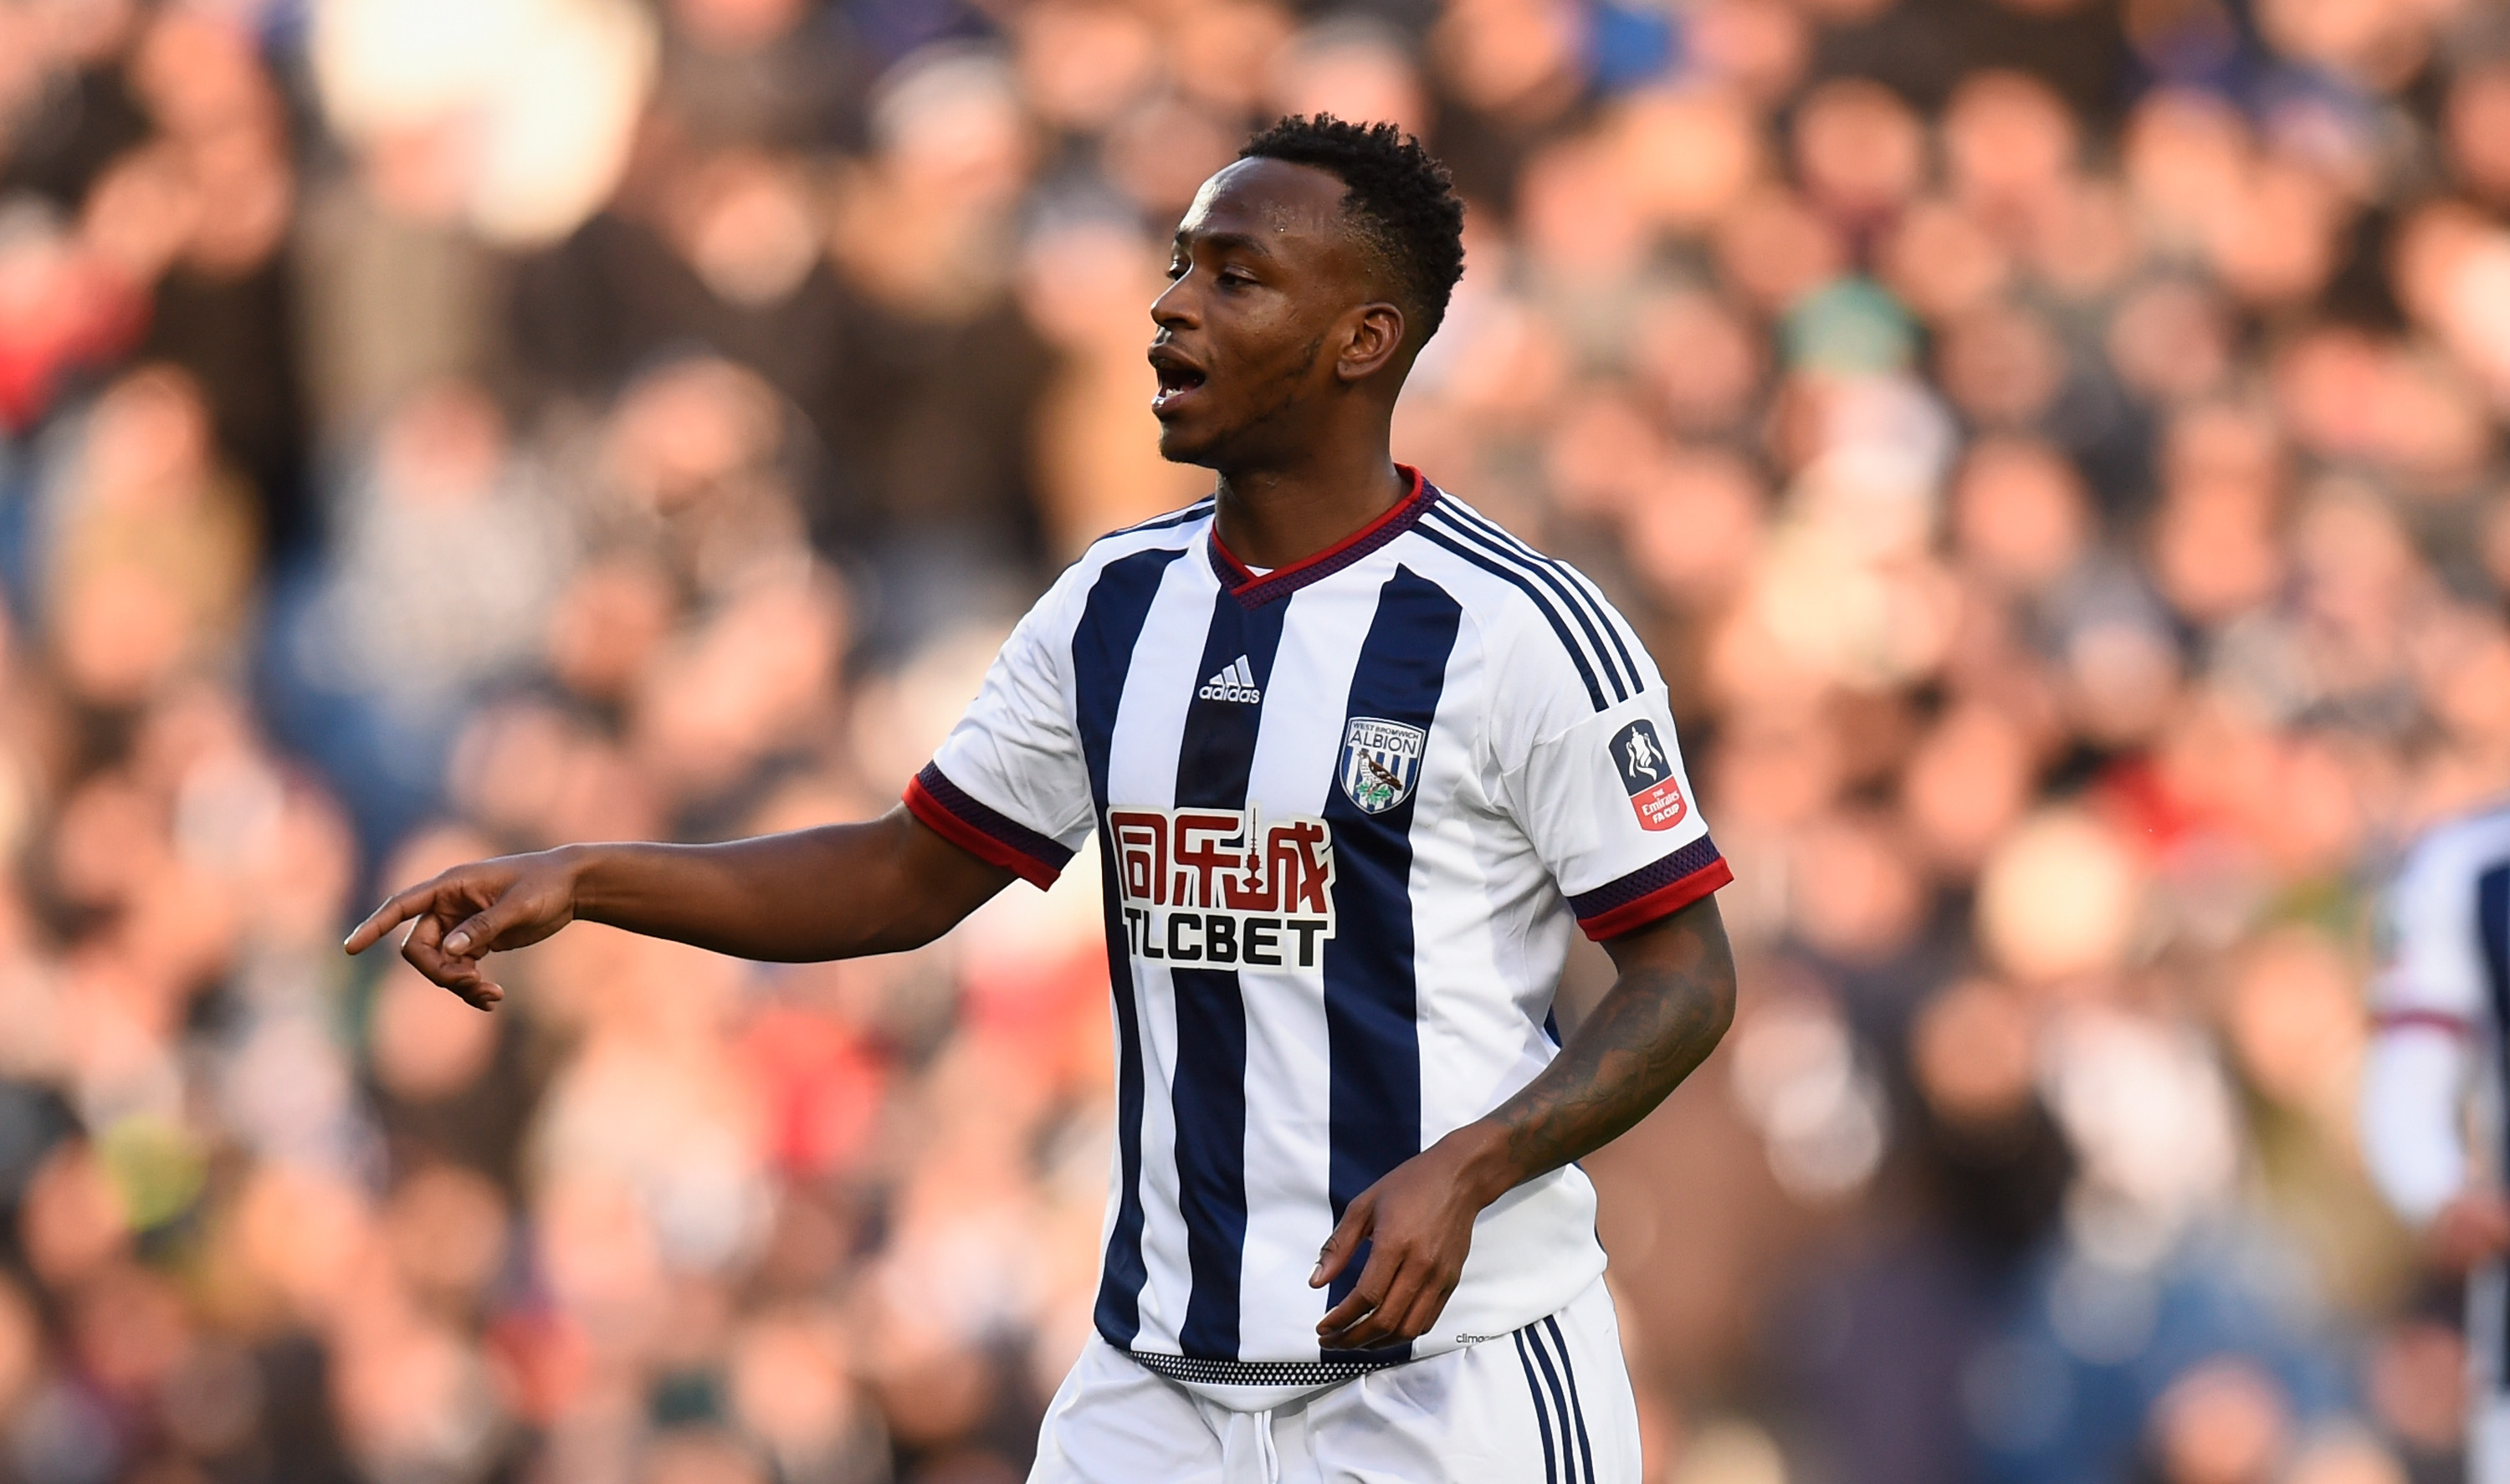 Saido Berahino deal could kick-start crazy transfer deadline day for Newcastle United